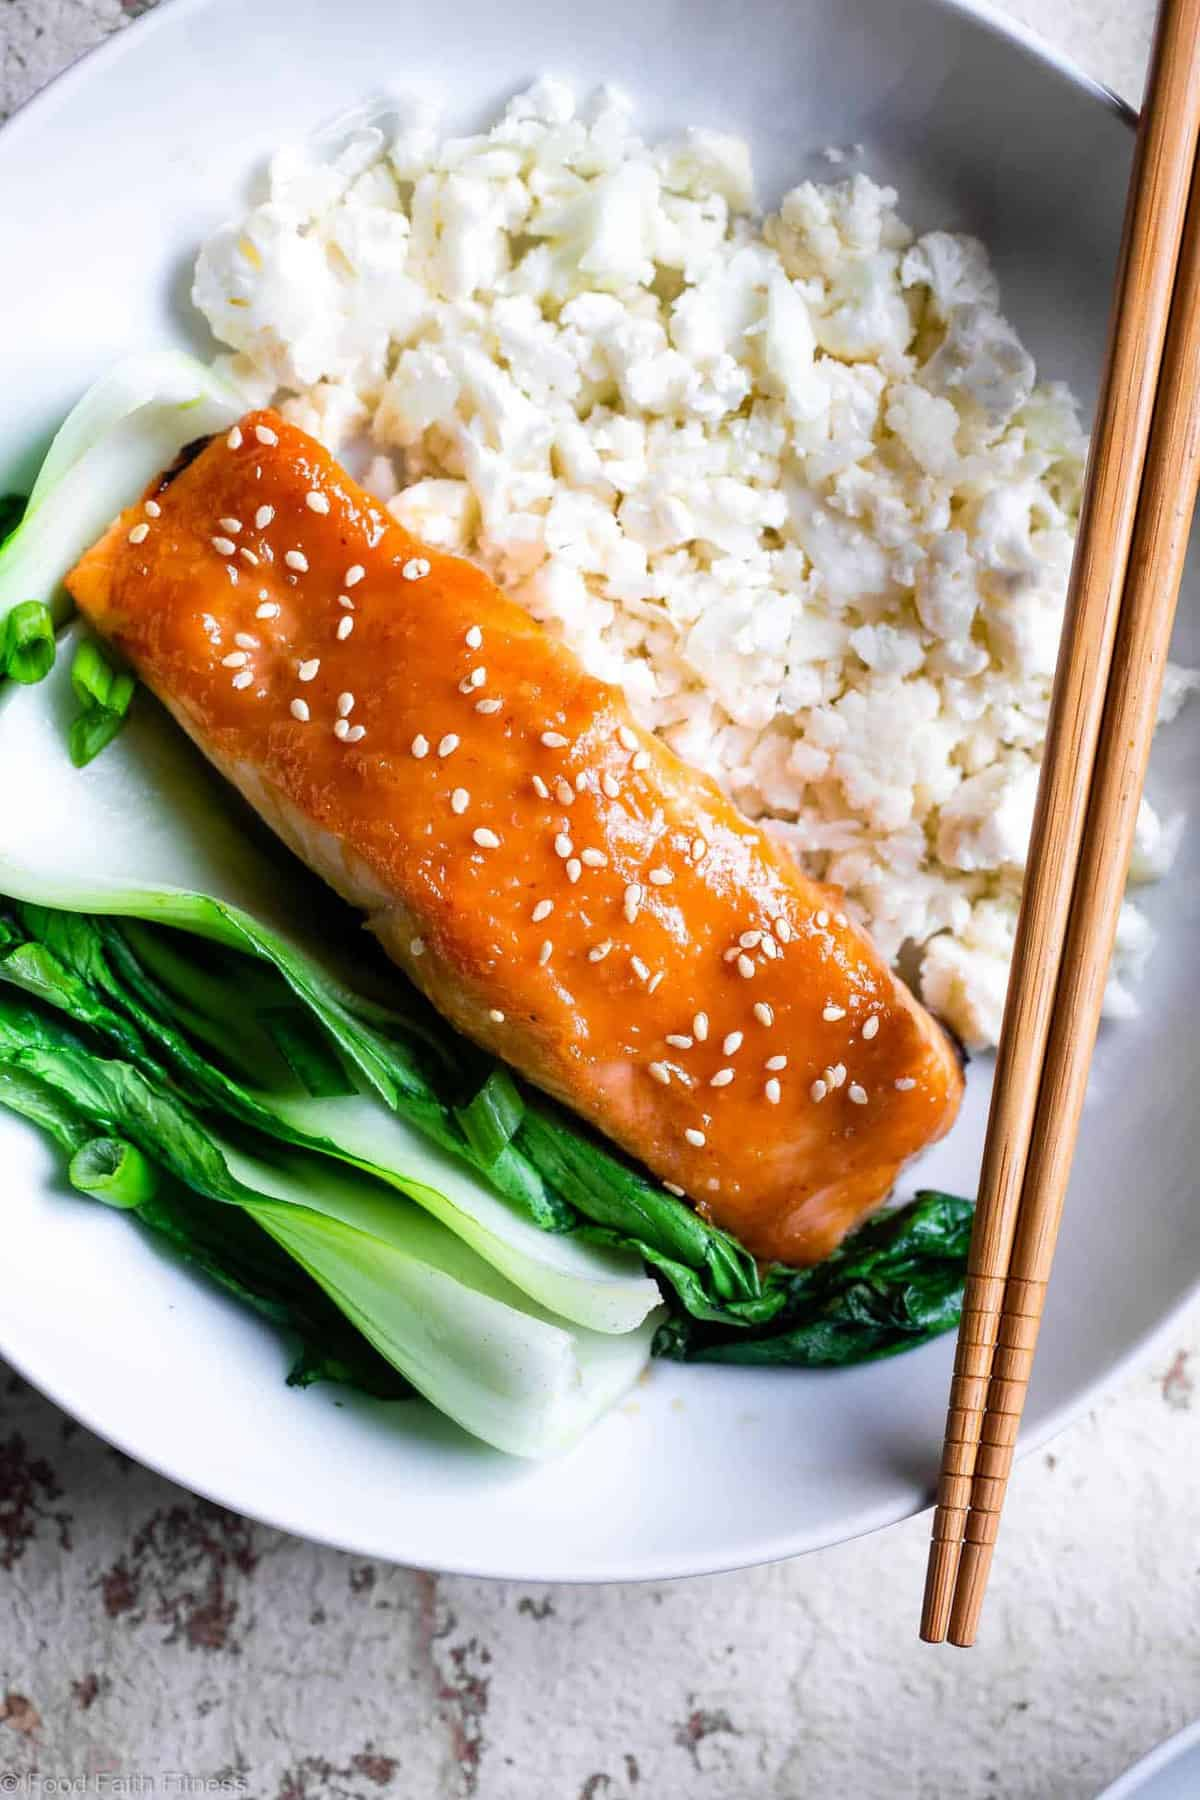 Honey Sriracha Miso Glazed Salmon - An easy, 15 minute weeknight dinnerthat is big on spicy-sweet asian flavor! A gluten free meal you'll make over and over! Only one Weight Watchers SmartPoint too! | #Foodfaithfitness | #Glutenfree #Lowcarb #Keto #Healthy #Dairyfree